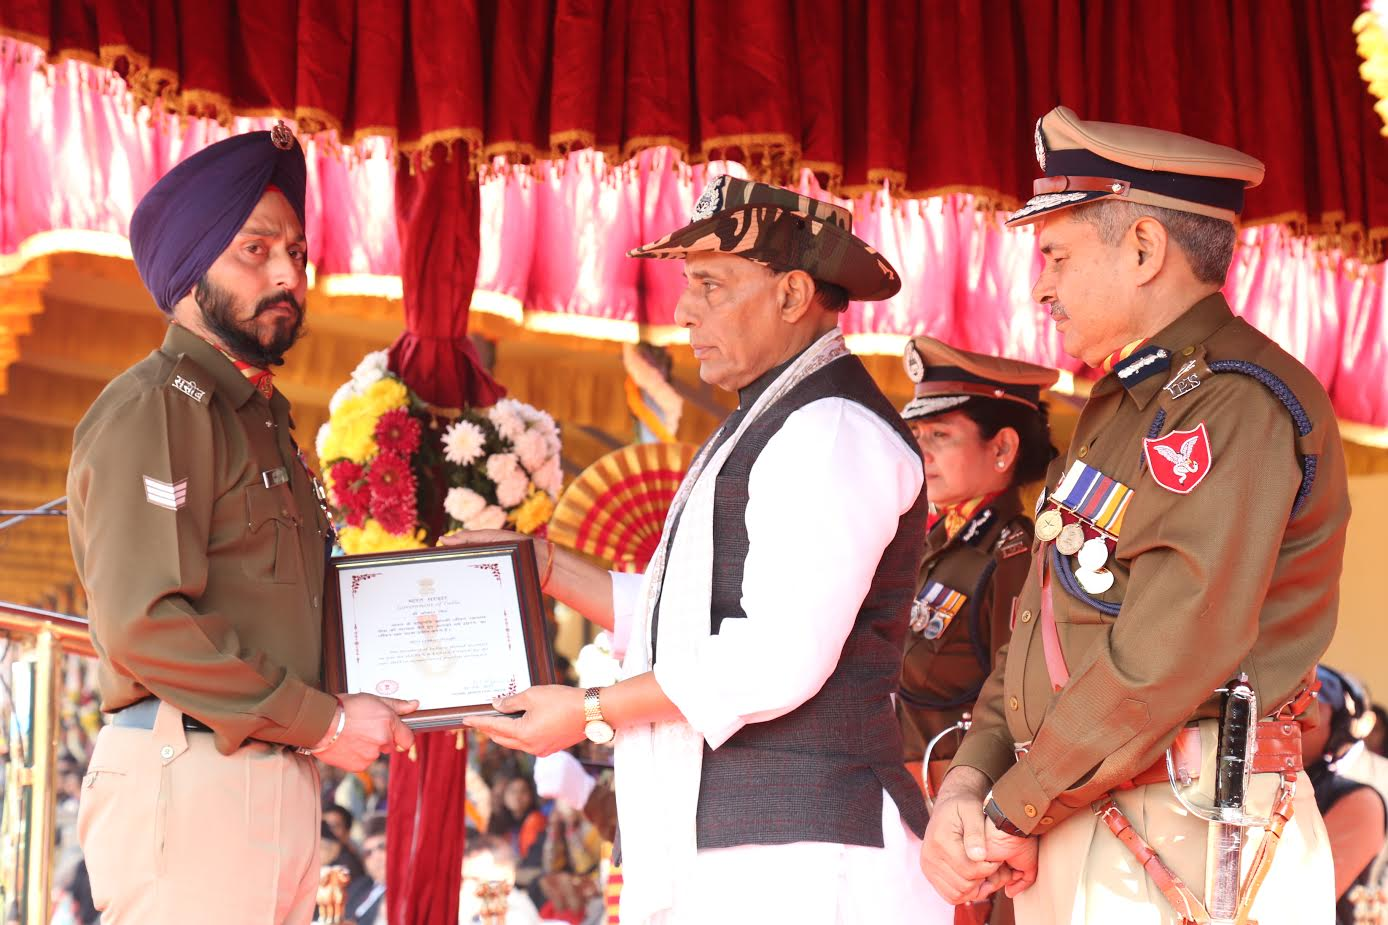 shri-rajnath-singh-giving-medals-to-ssb-jawans-2